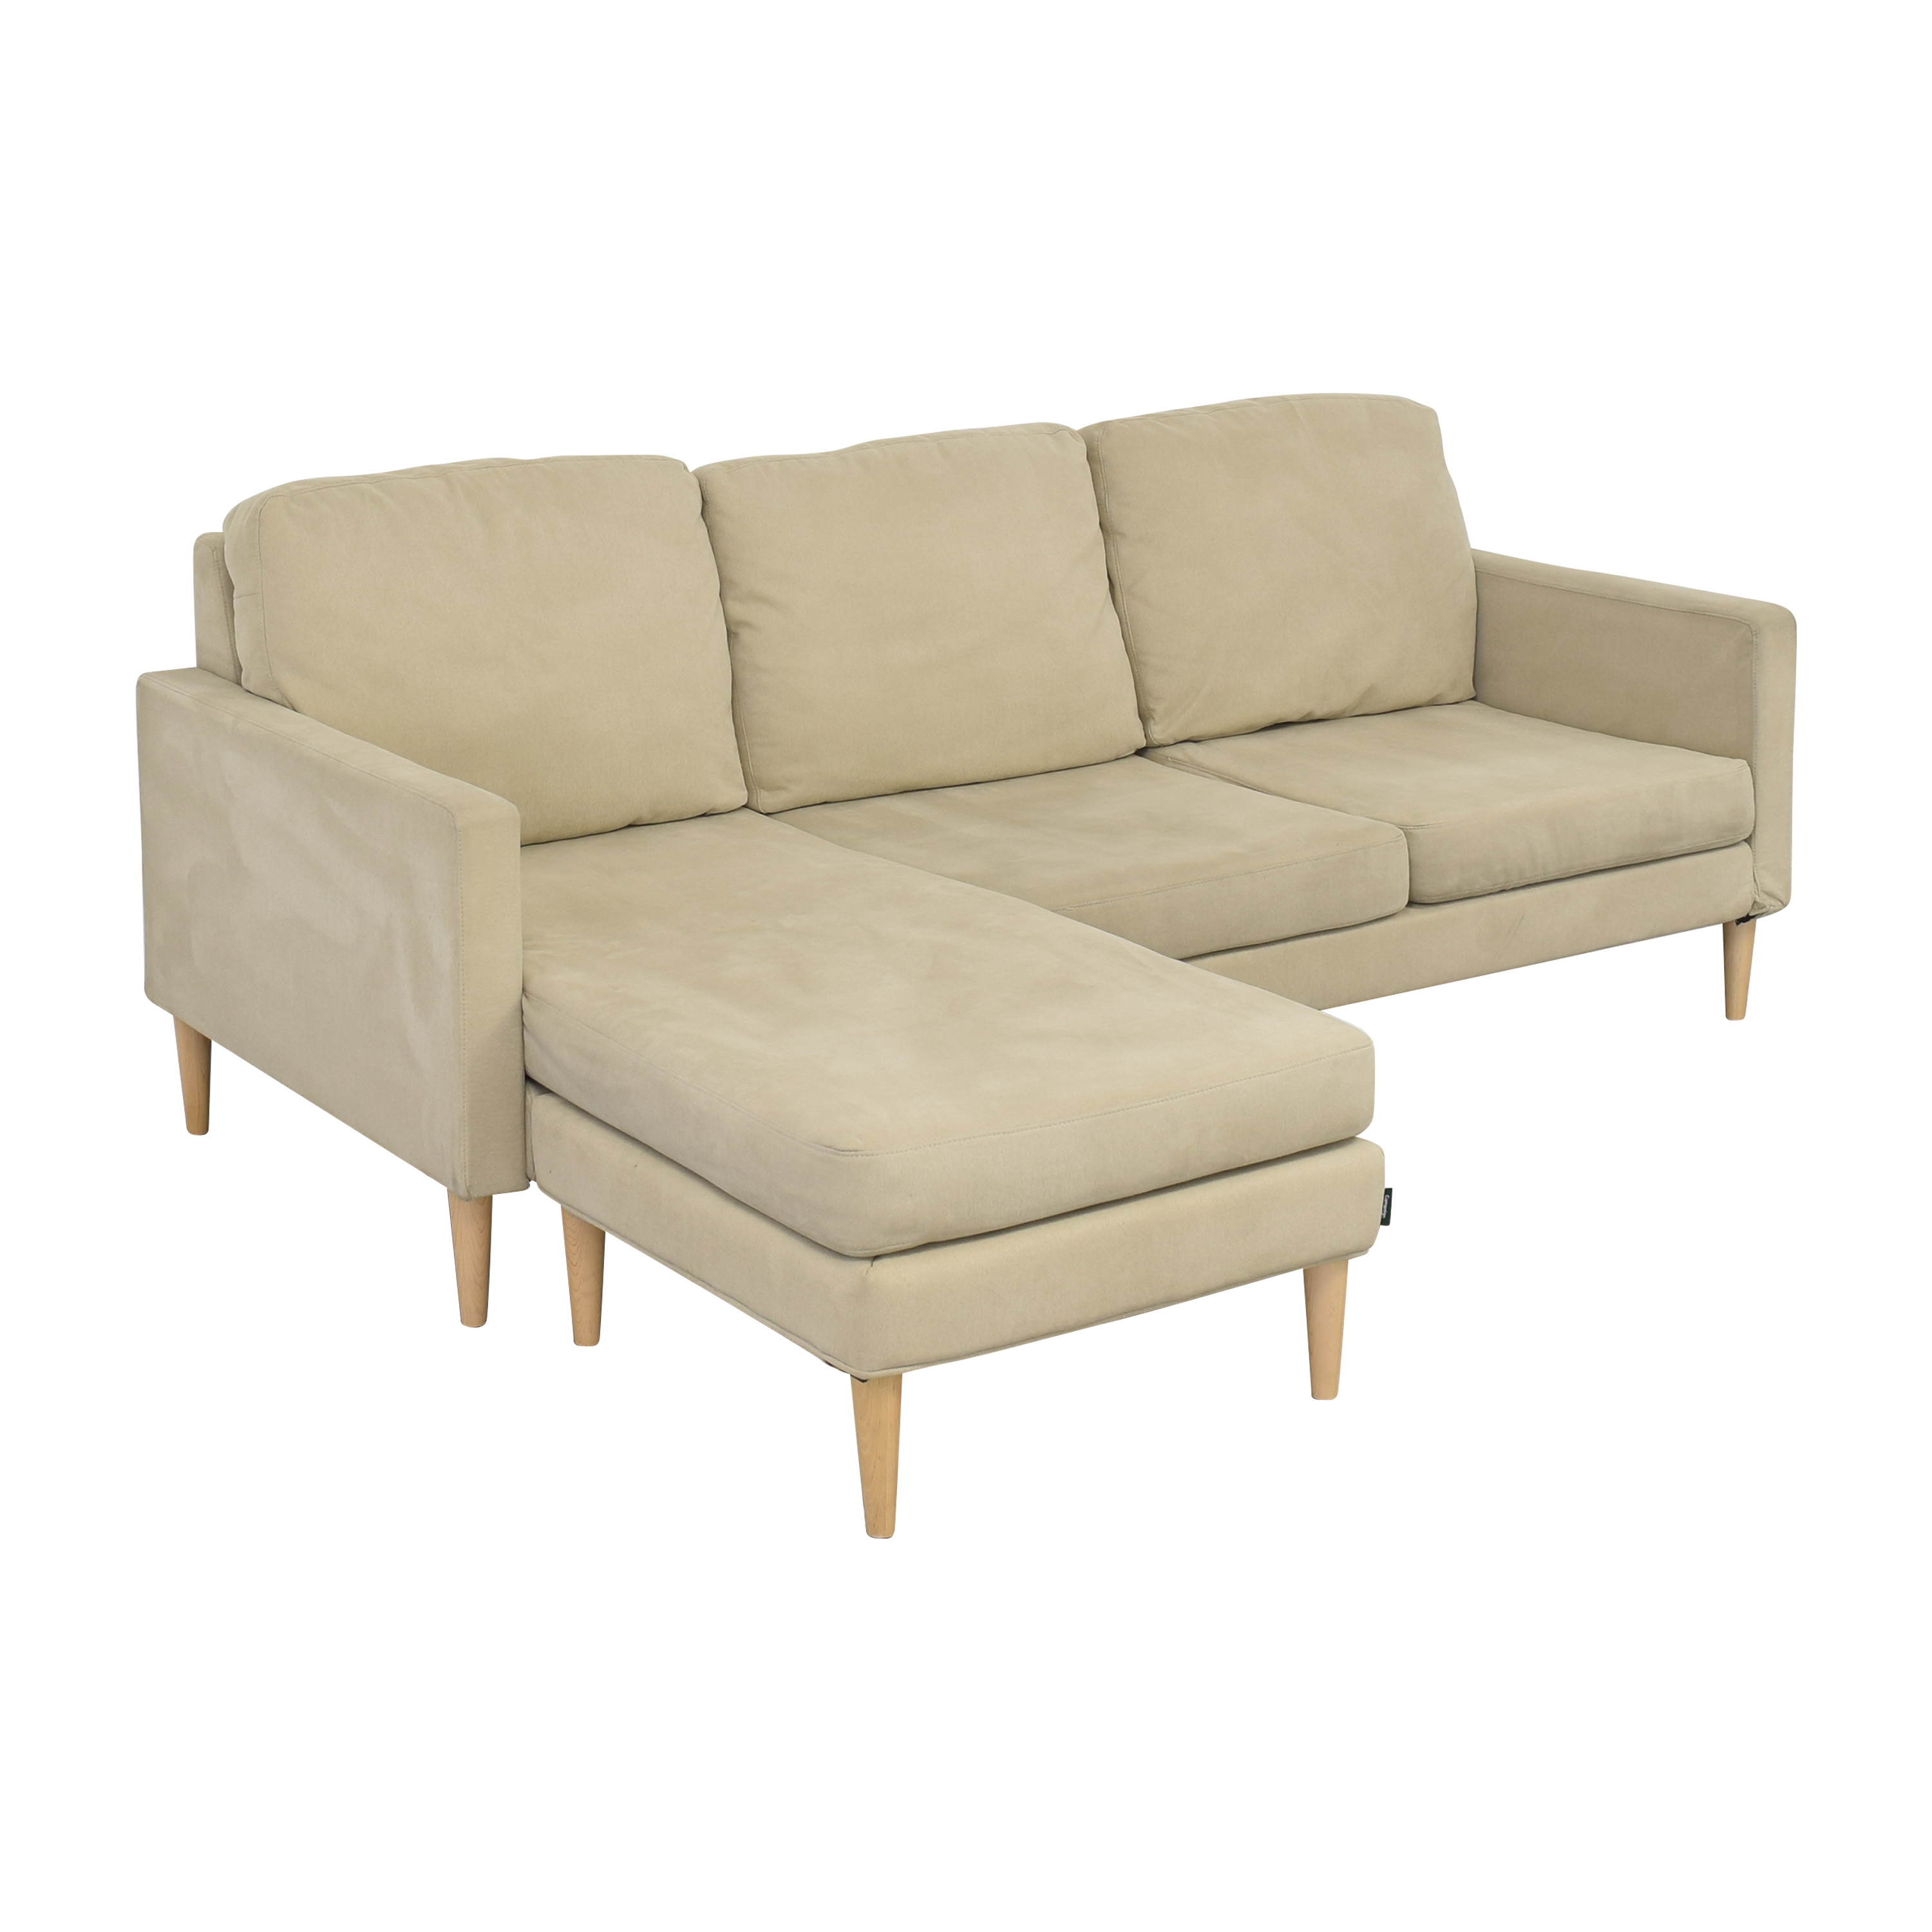 Campaign Campaign Modern Sectional Sofa